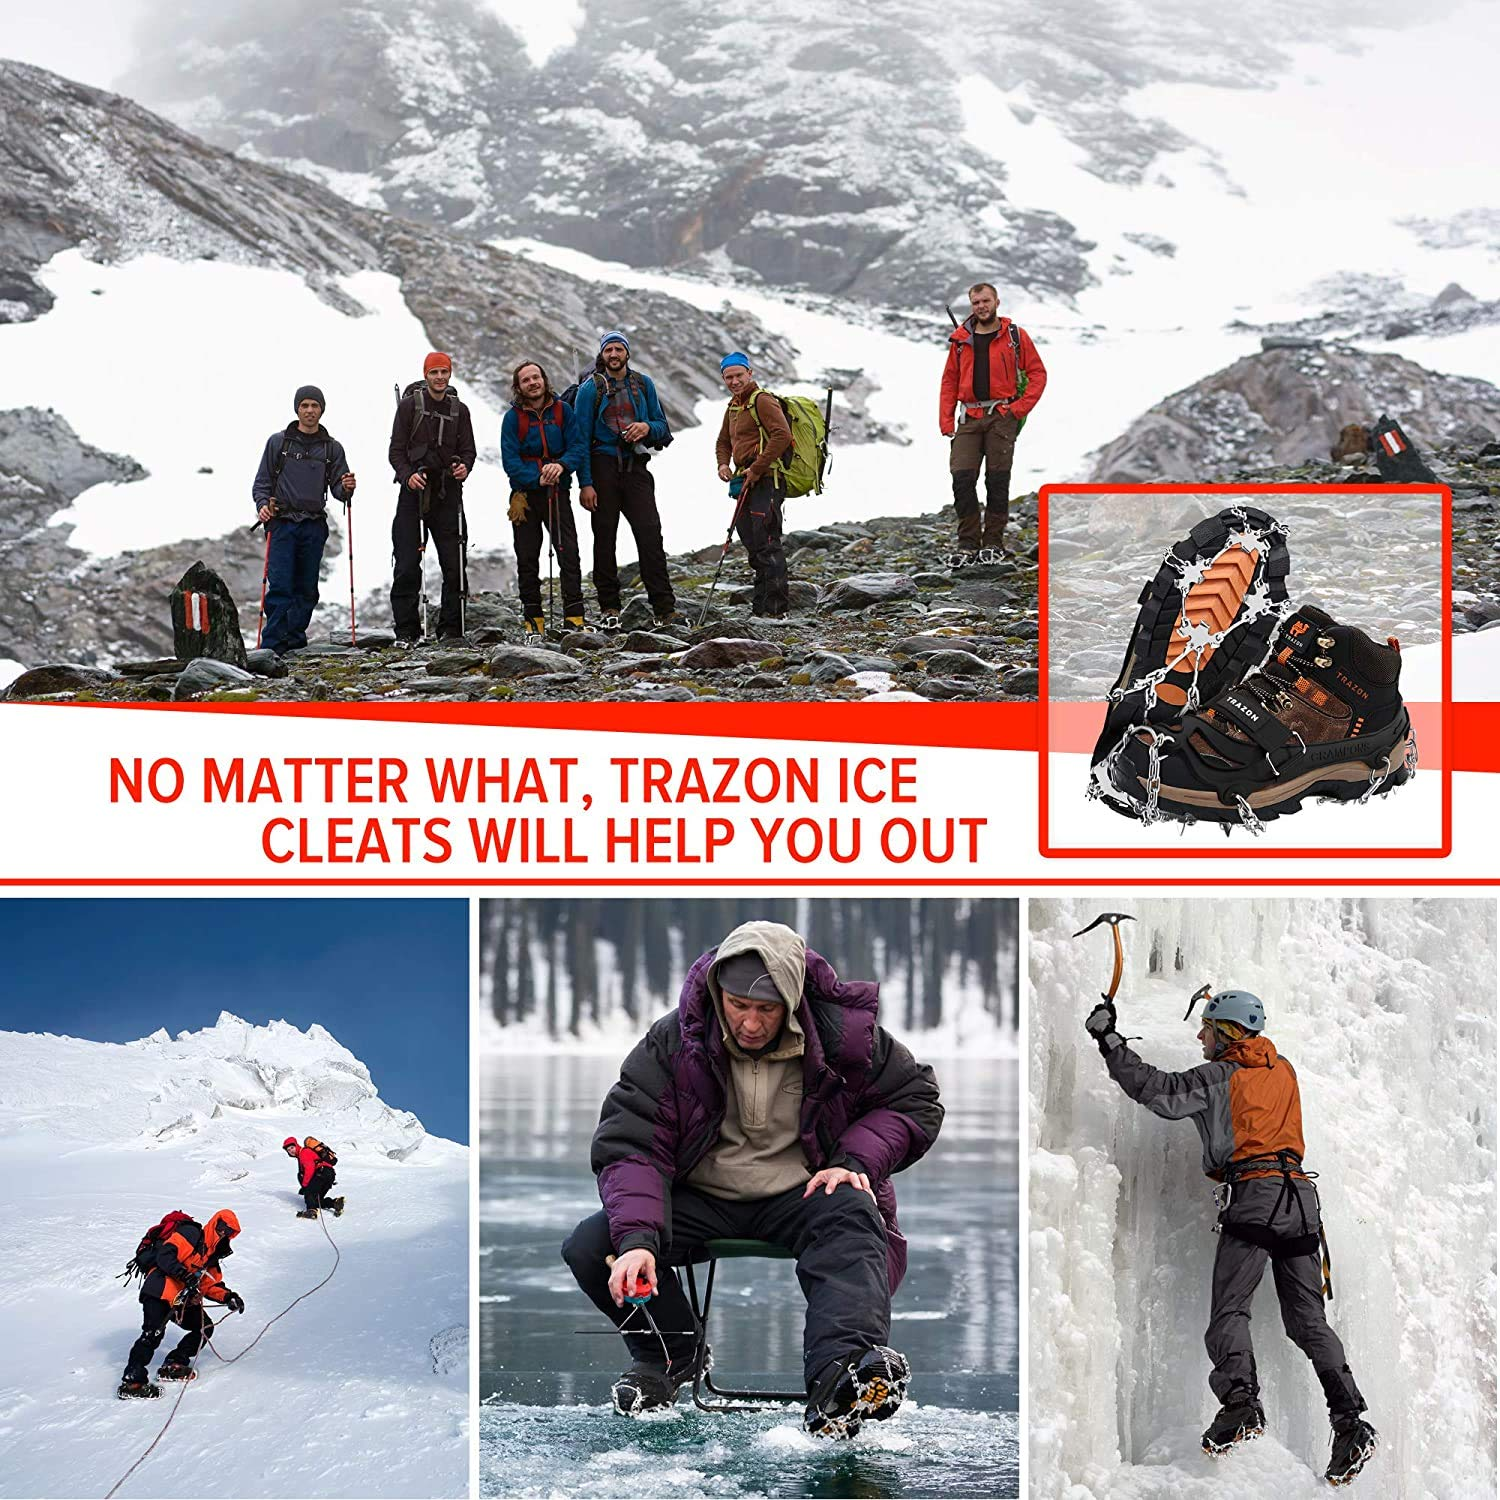 DELFINO Crampons Ice Cleats Cover for Hiking Boots Shoes Anti Slip Walk Traction Spikes Snow Ice Grippers Grips Safe Protect for Climbing Fishing Mountaineering Walking 10-Spikes for Men Women, L